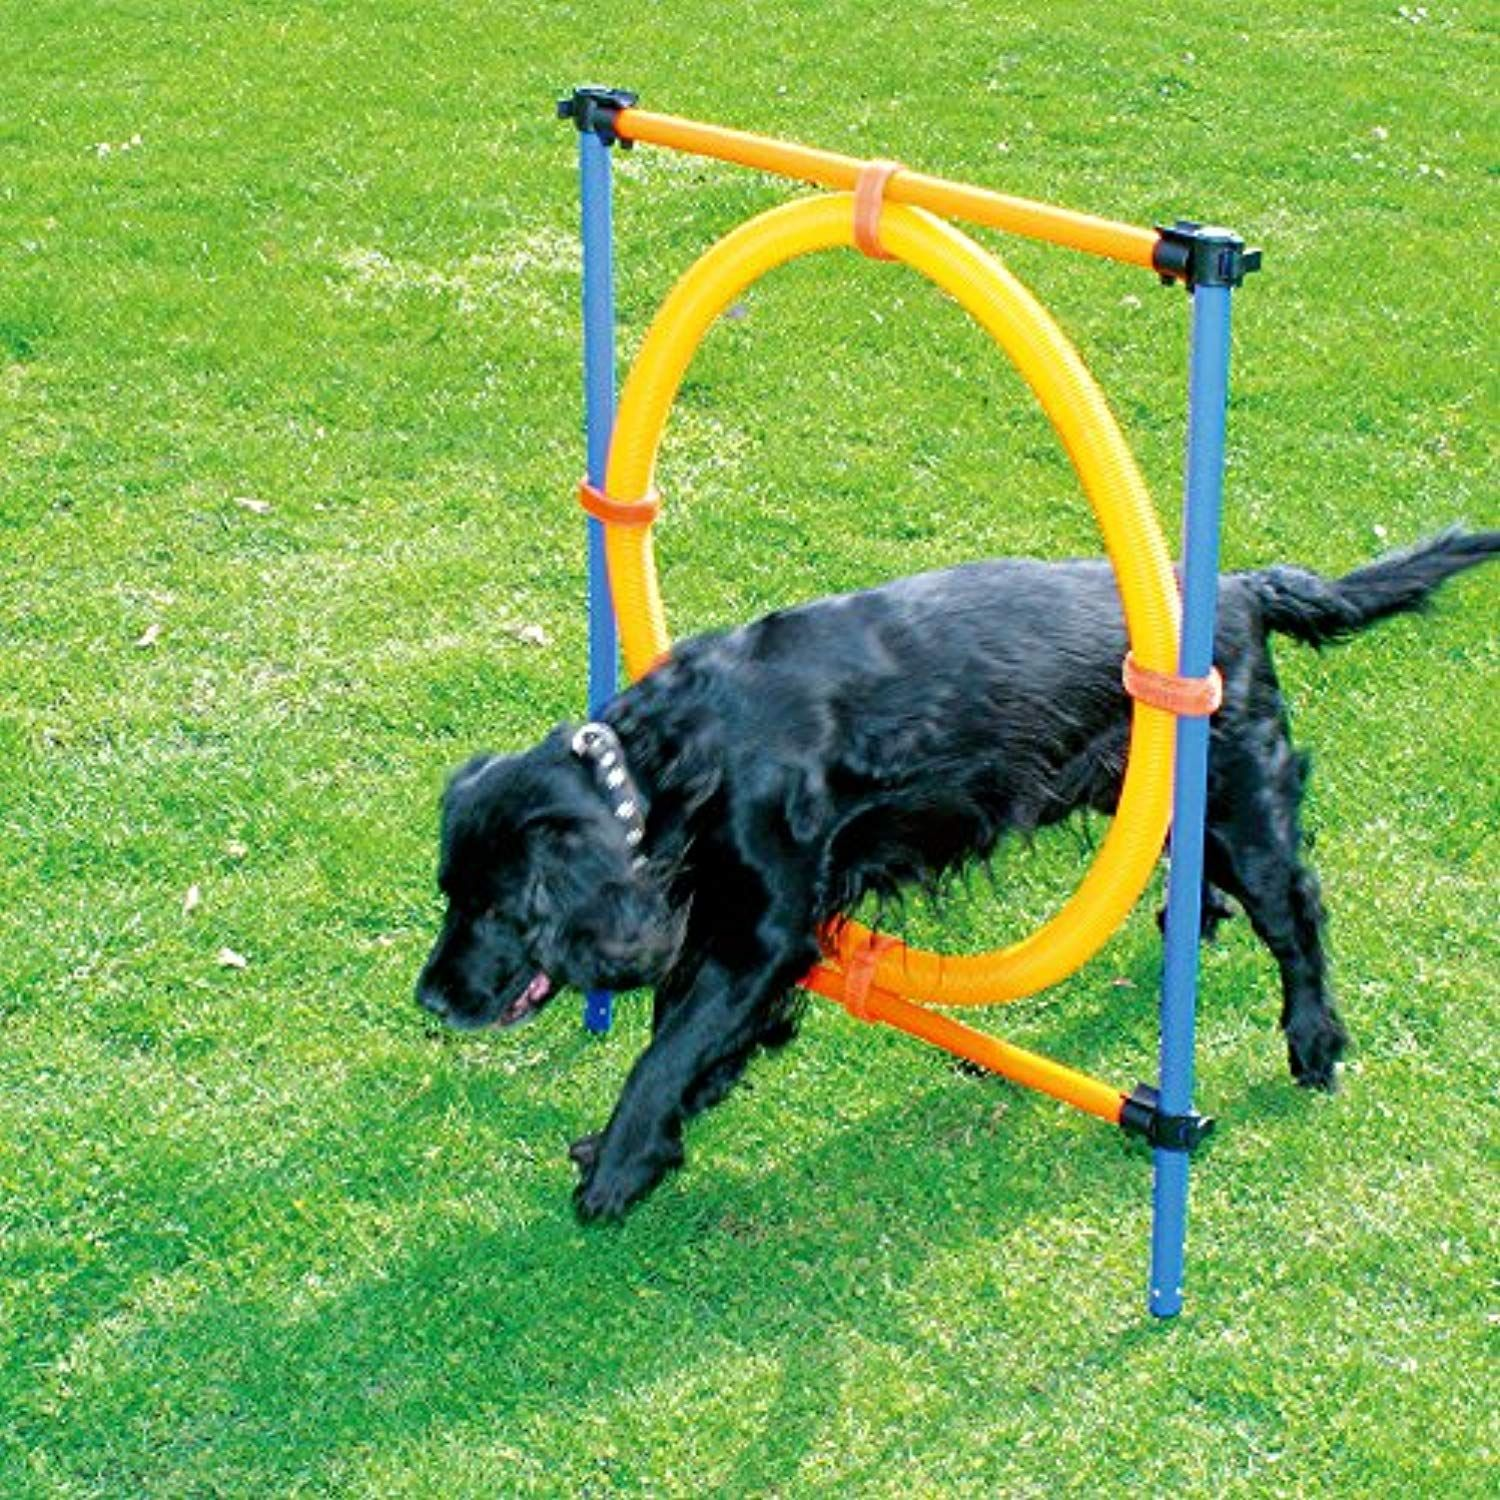 Agility Adjustable Hurdle Jump Pet Dogs Outdoor Games Agility Exercise Training Equipment